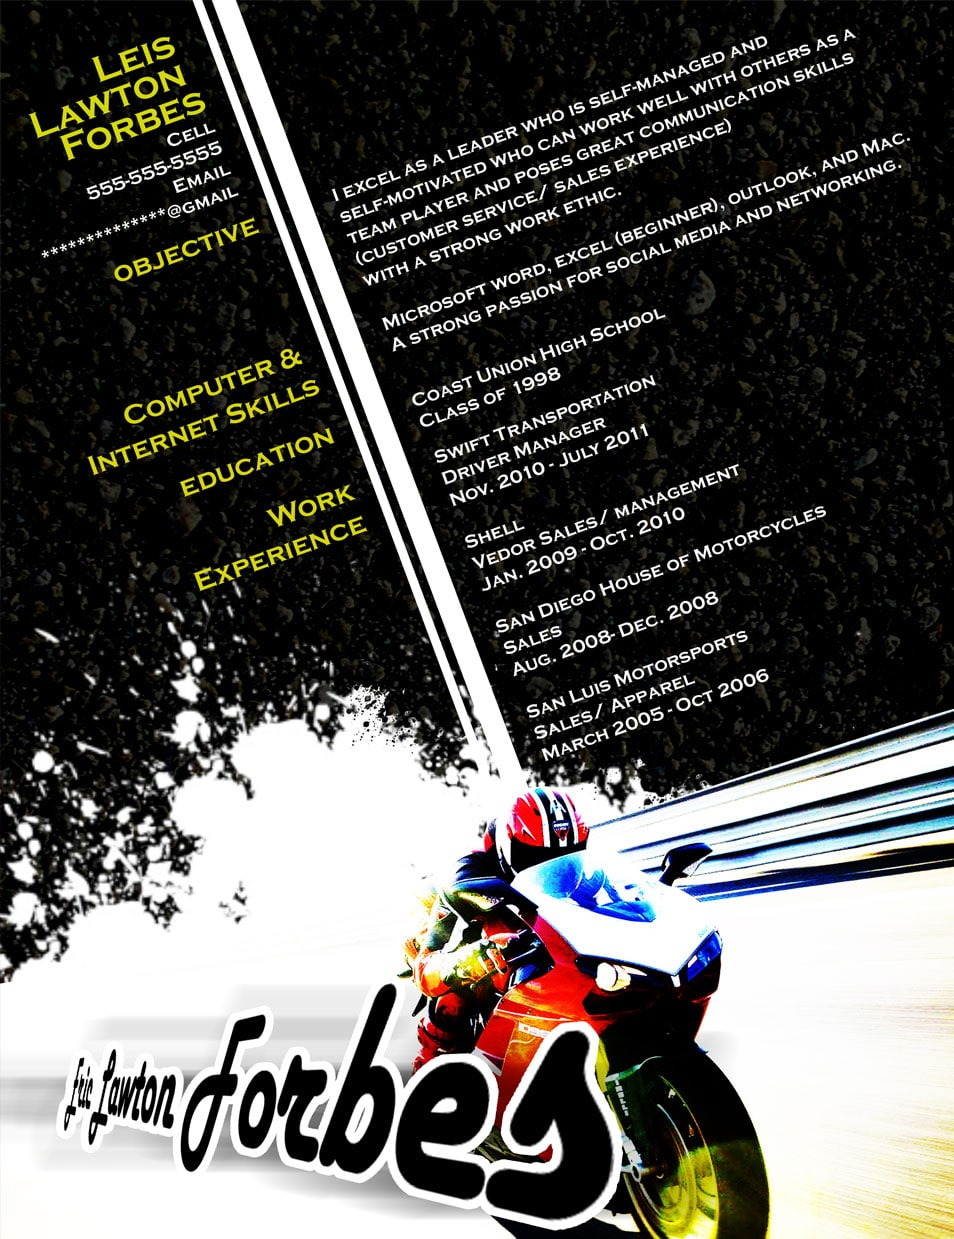 Resume - Motorcycle